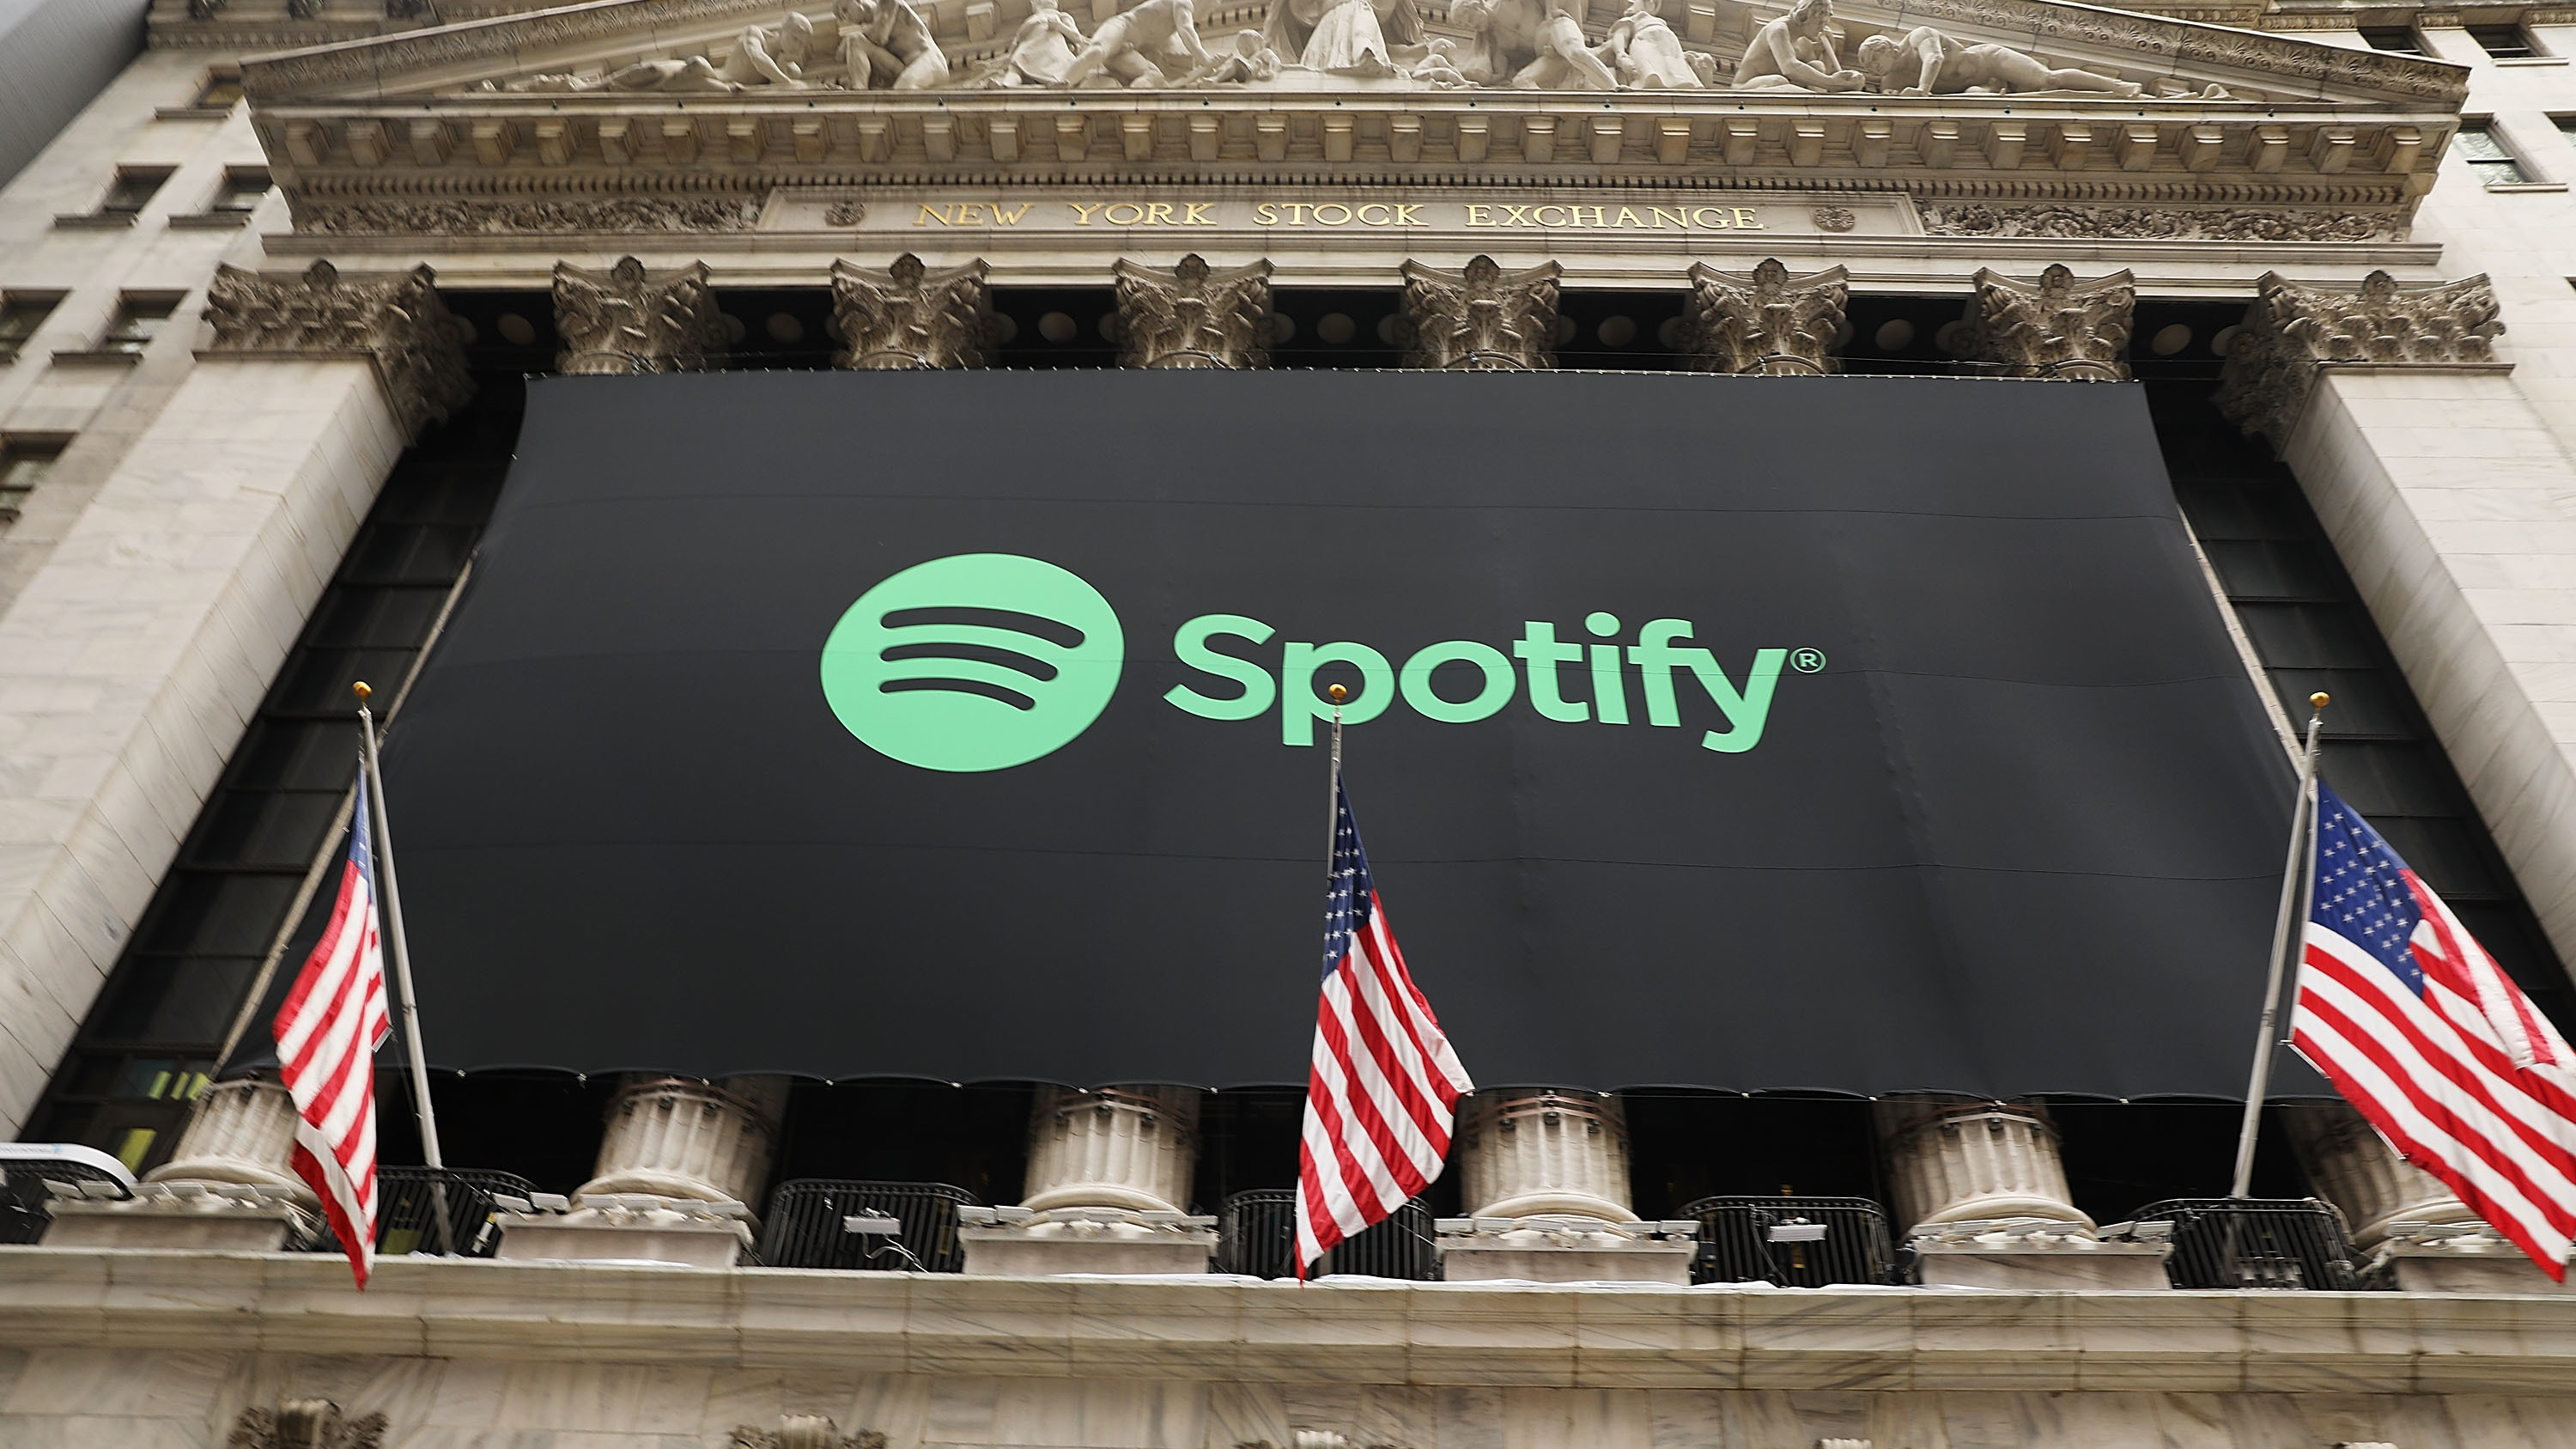 Spotify Is, For Now, The World's Most Valuable Music Company